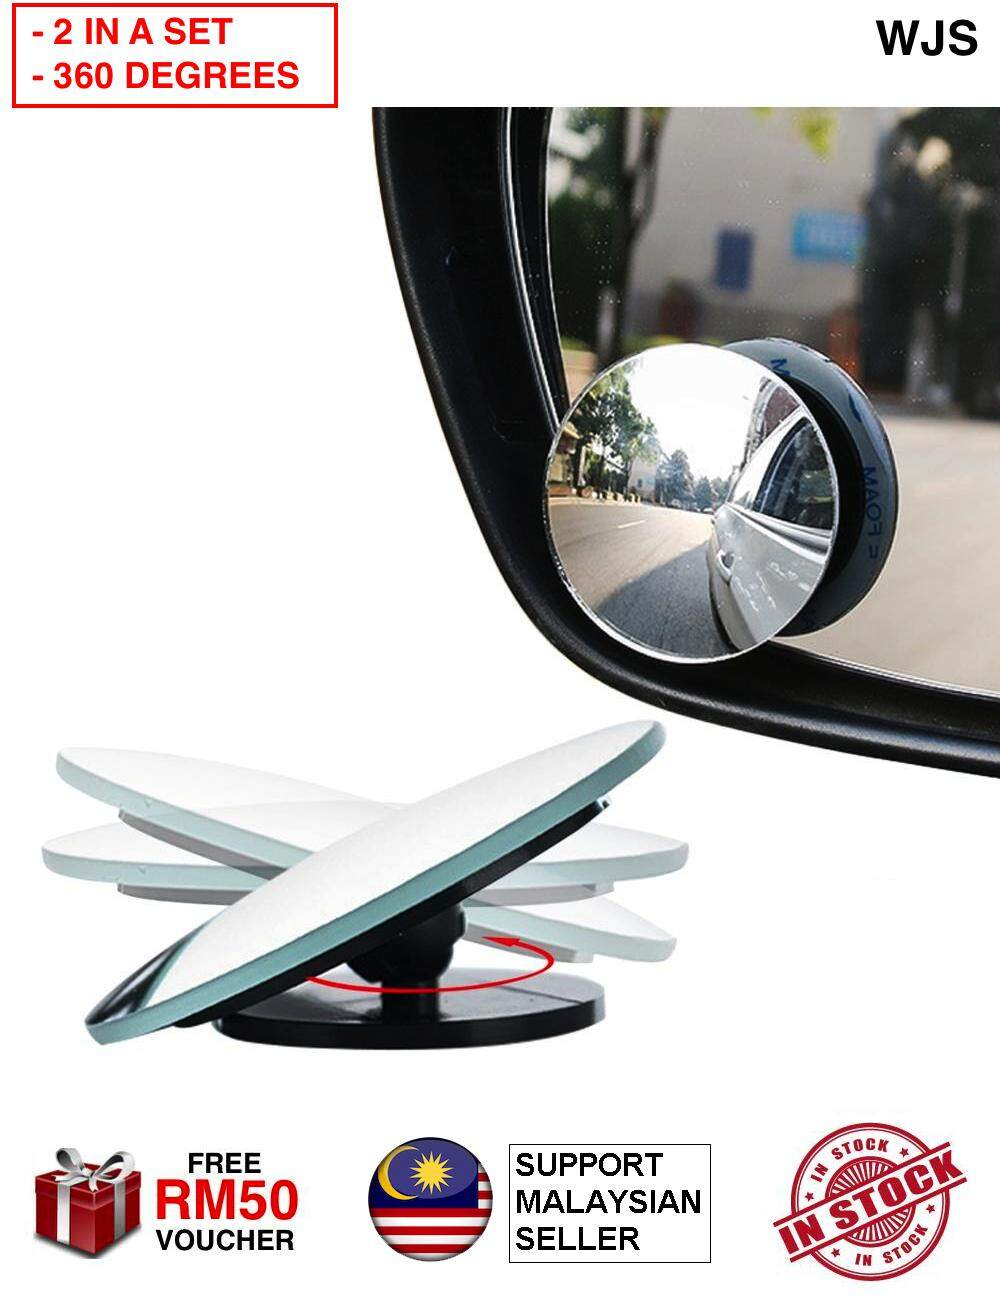 (ROTATABLE 360 DEGREES) 2pcs 2 pcs WJS Car Rear View Blind Spot Mirror Mini Side Mirror Round Stick-On Convex Mirror Wide Angle View Mirror For Safer Driving BLACK 360 DEGREES [FREE RM 50 VOUCHER]